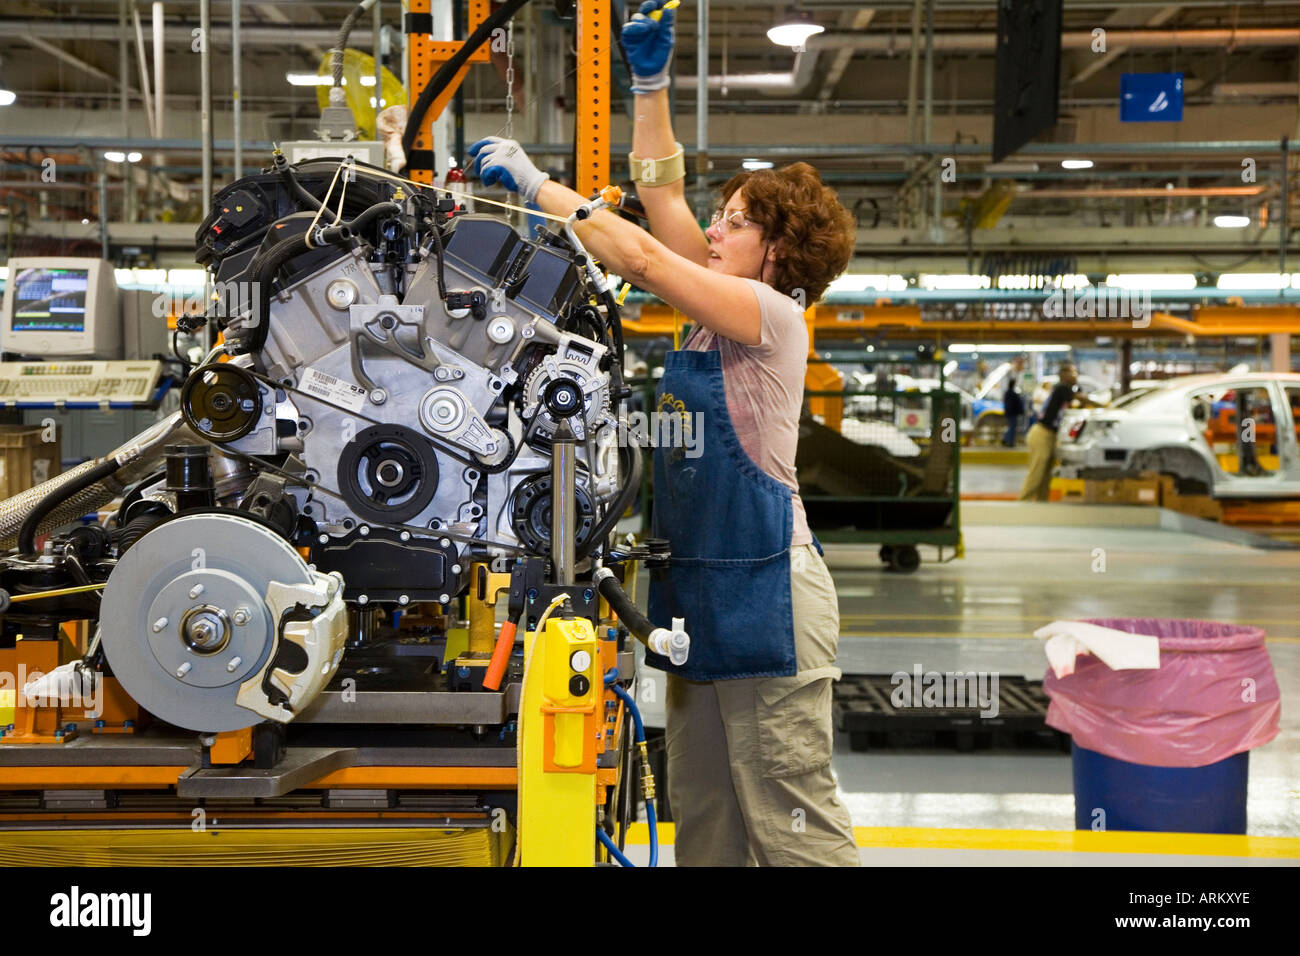 Sterling Heights Chrysler >> Chrysler Sterling Heights Assembly Plant Stock Photo 9189181 Alamy